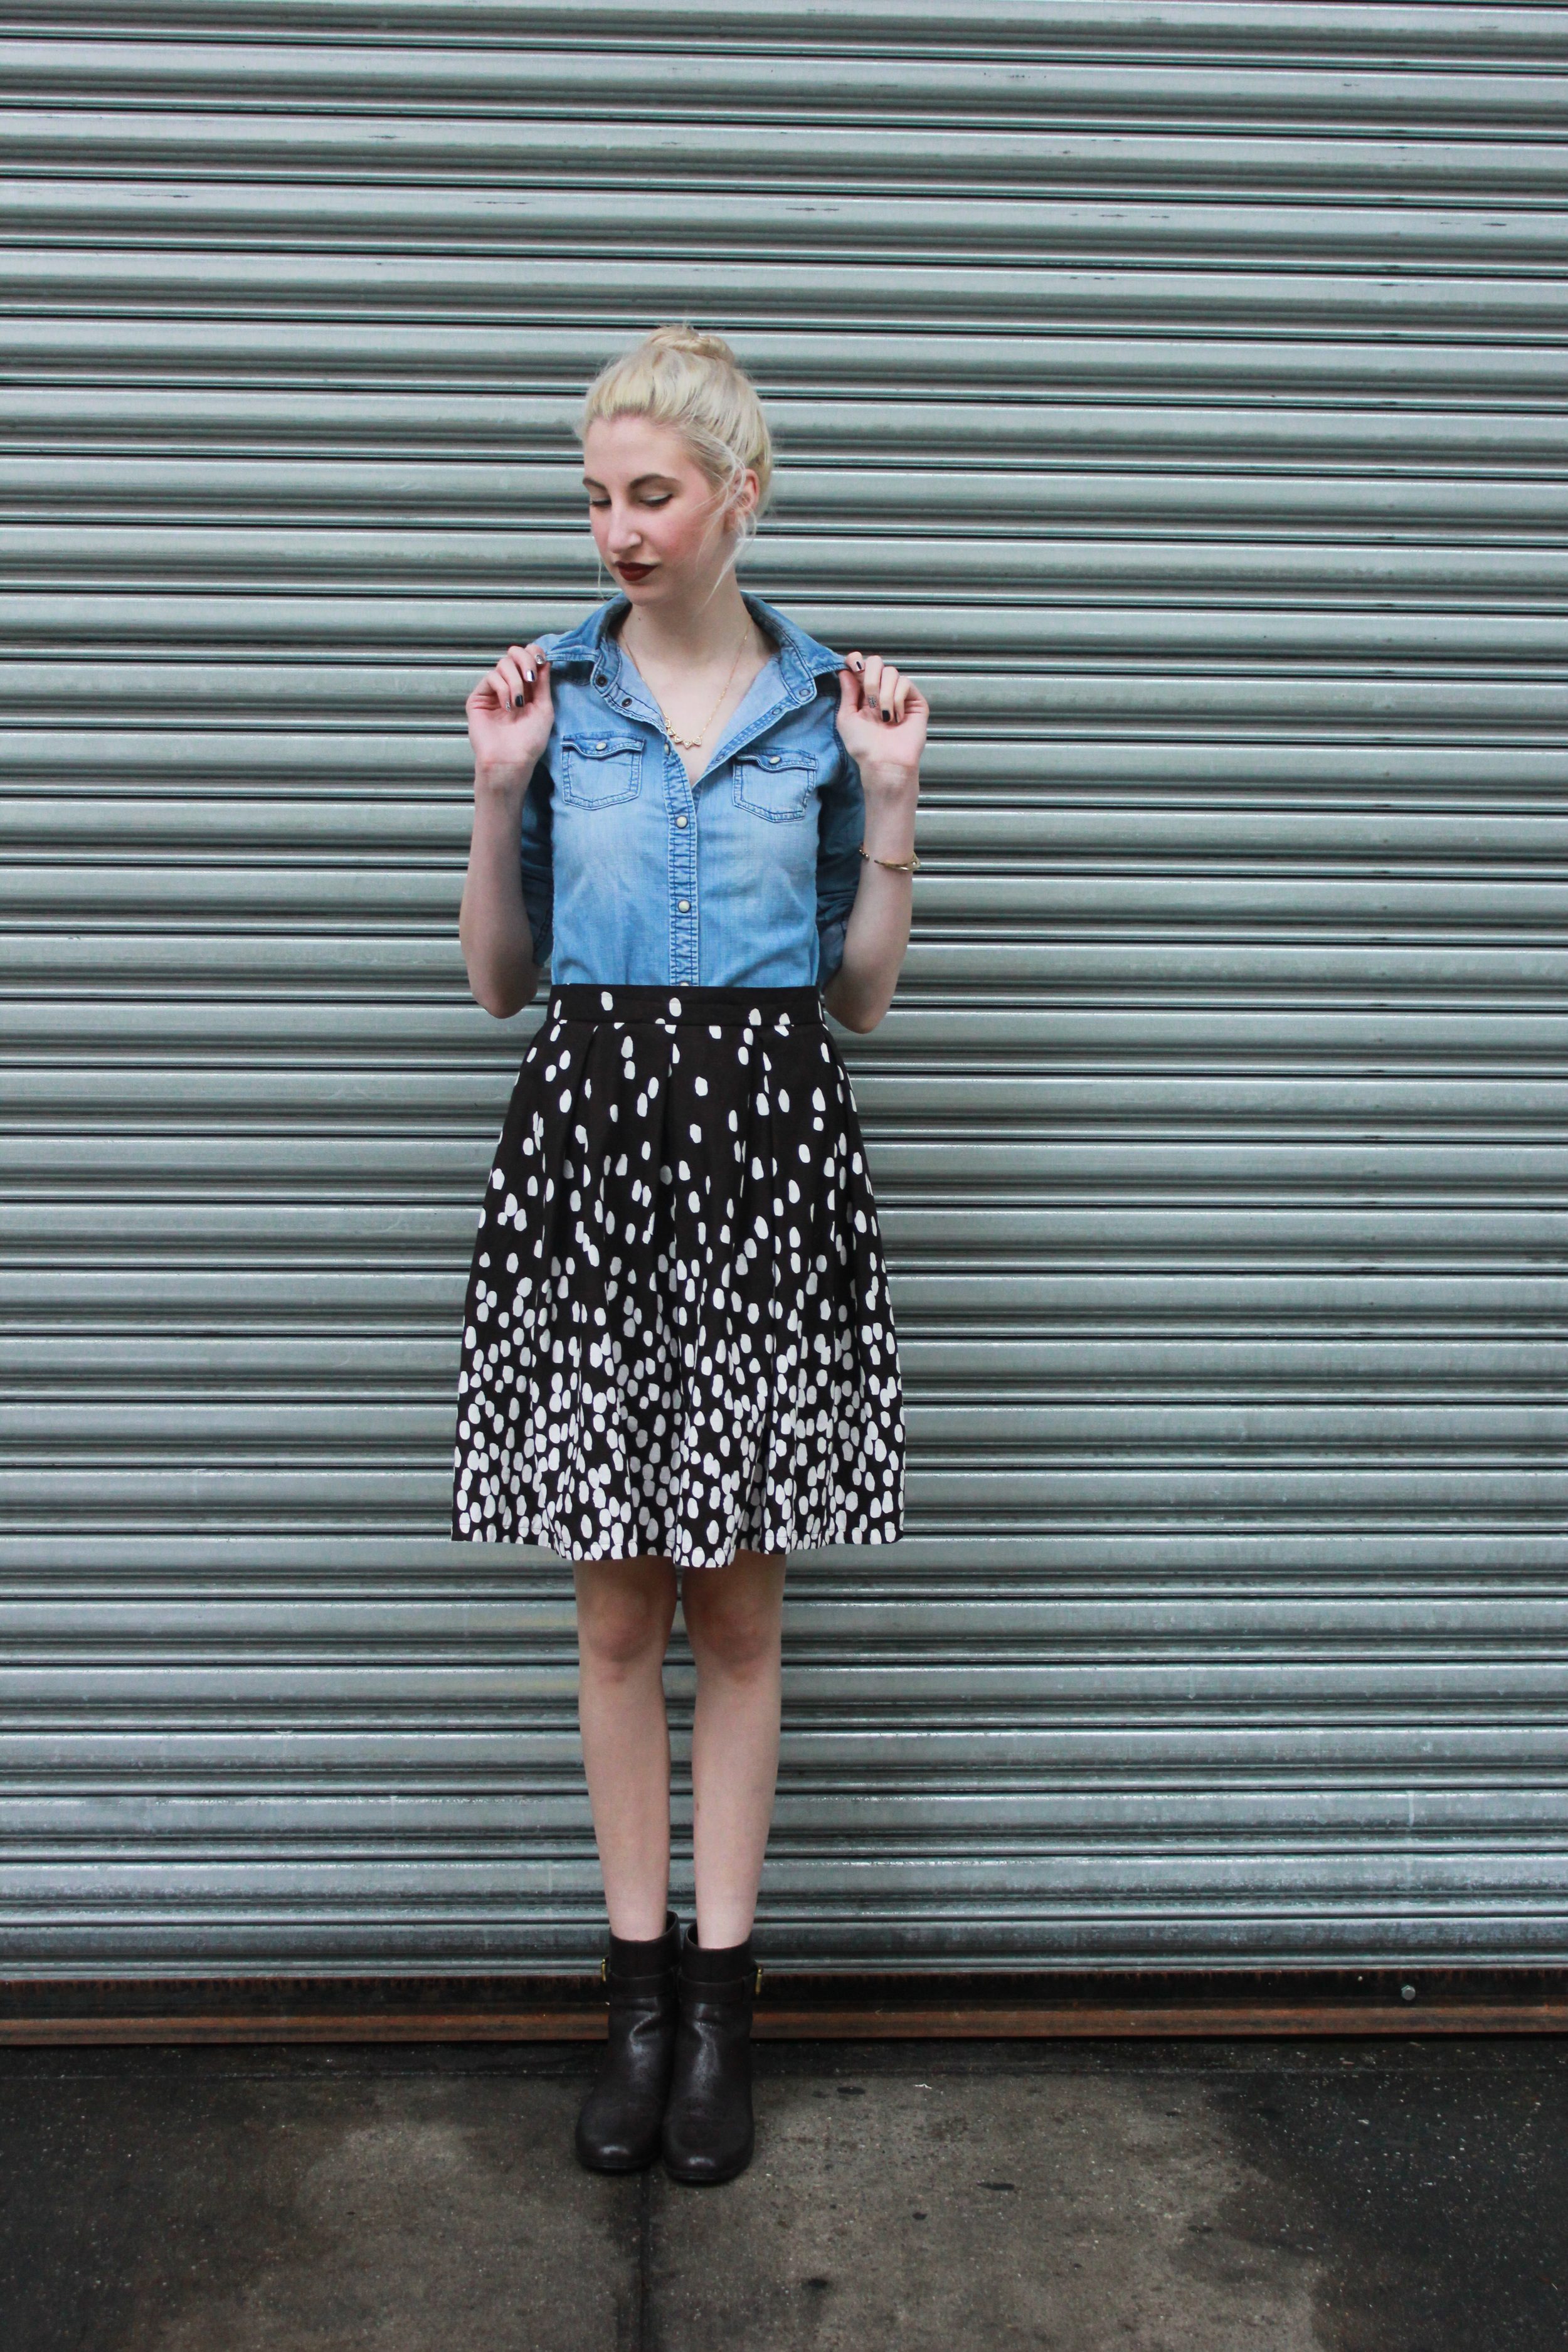 American Eagle Denim shirt, handmade midi skirt, brown leather booties, simple gold necklace from LOFT, Clinique's Cola Pop Color pop lipstick